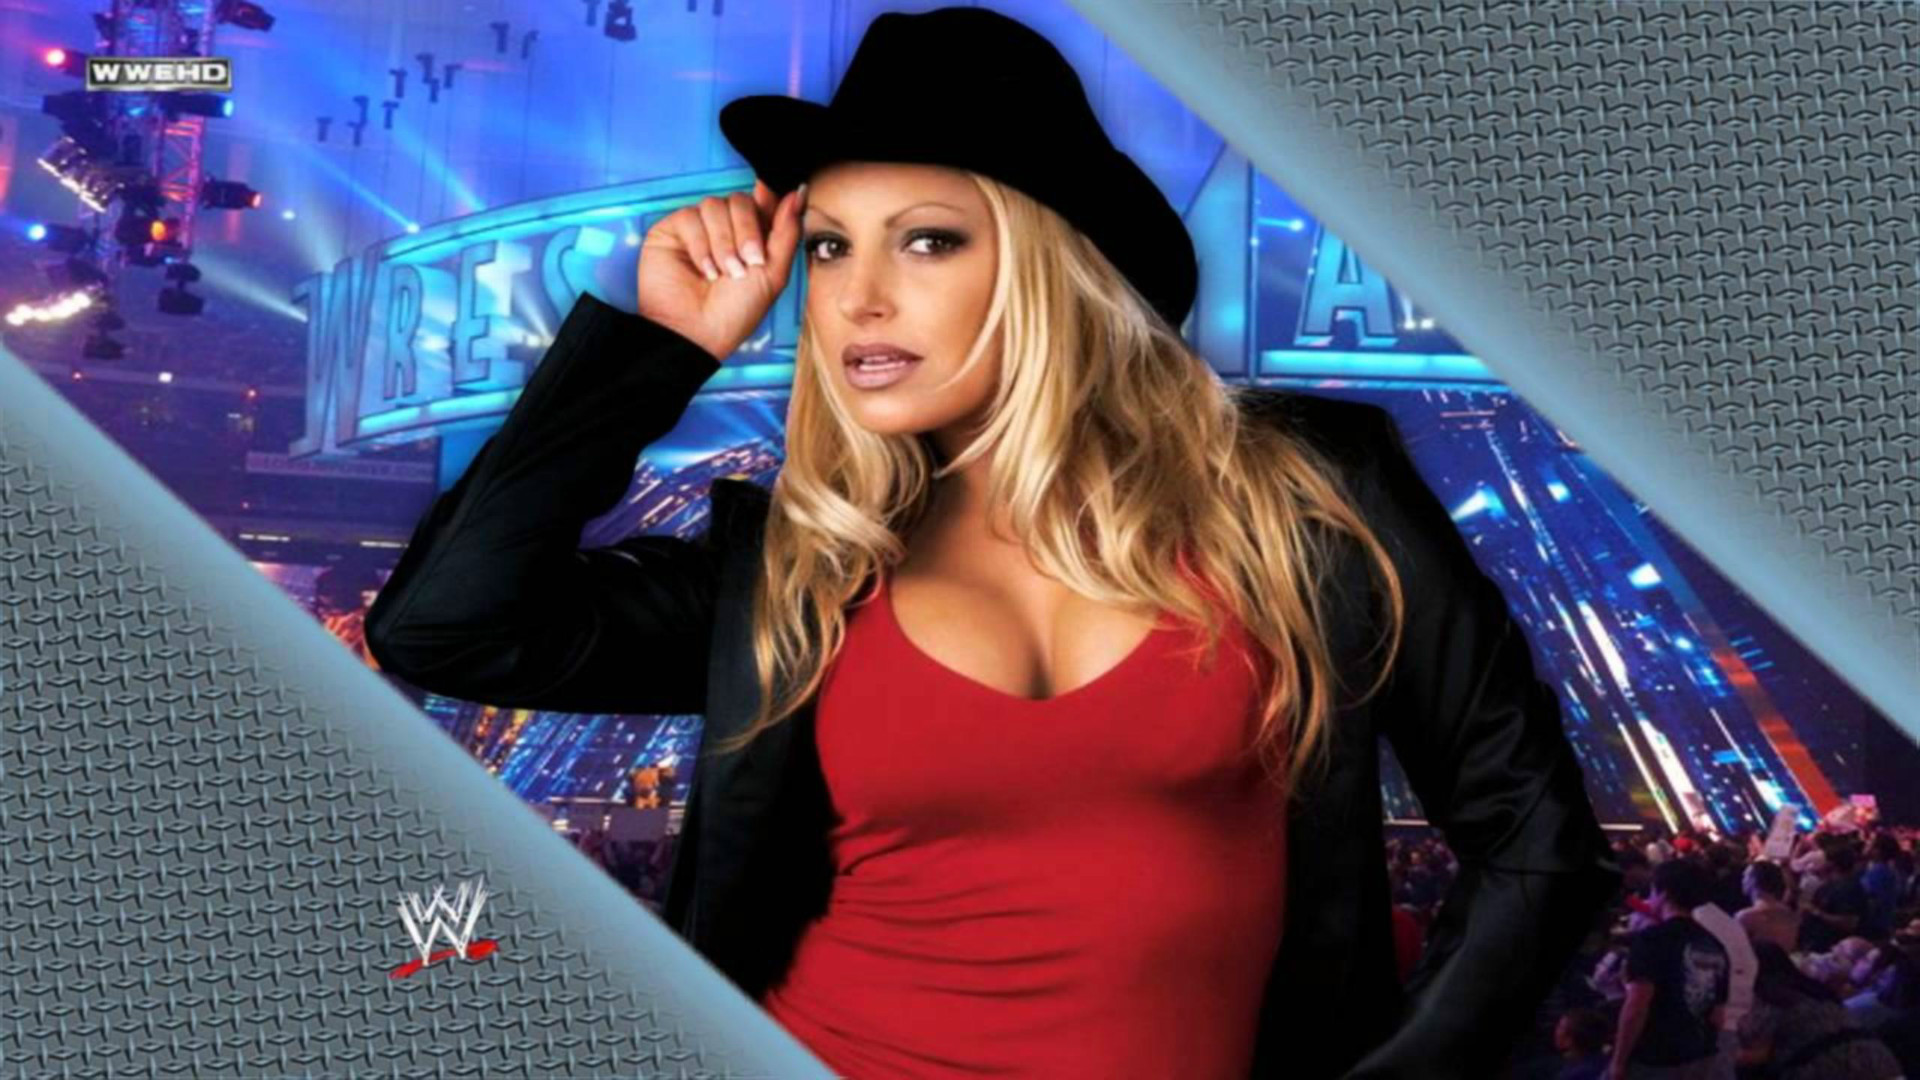 WWE Hall of Famer Trish Stratus